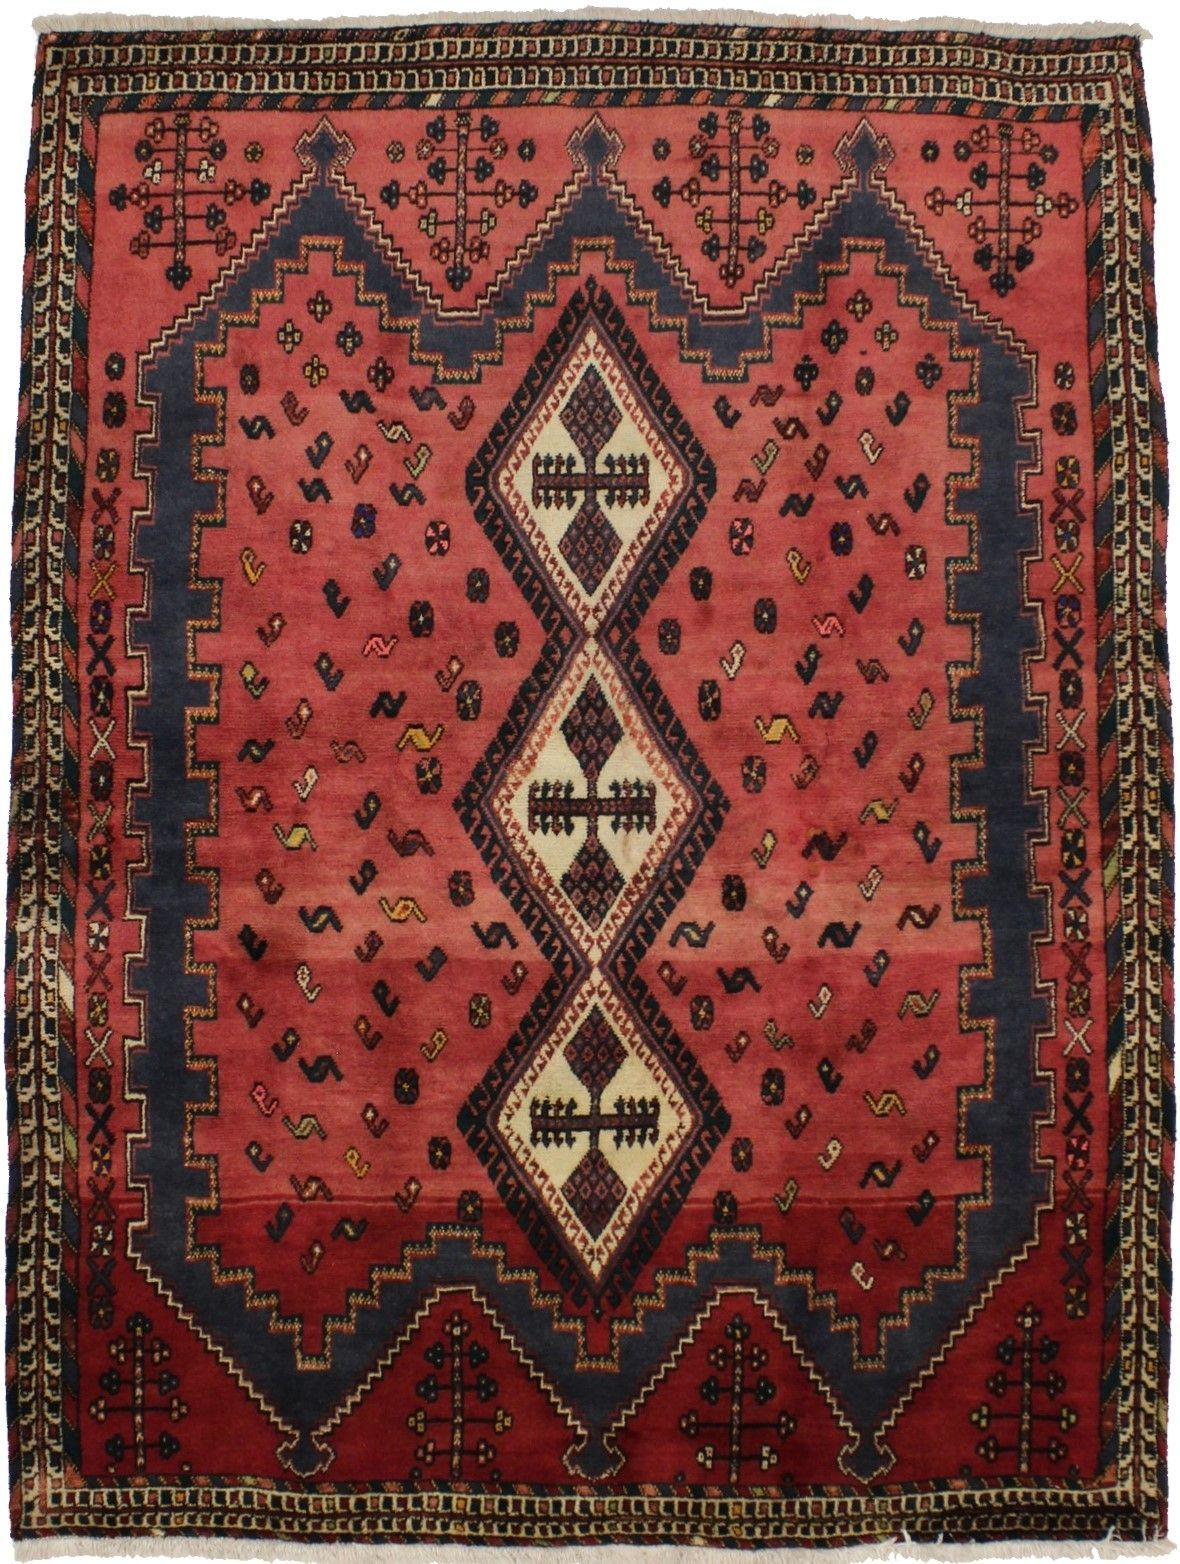 Captivating Tribal Bright Color Oriental Handmade Area Rug Authentic Affordable Persian Magic Rugs Antique In Matthews 9315 Monroe